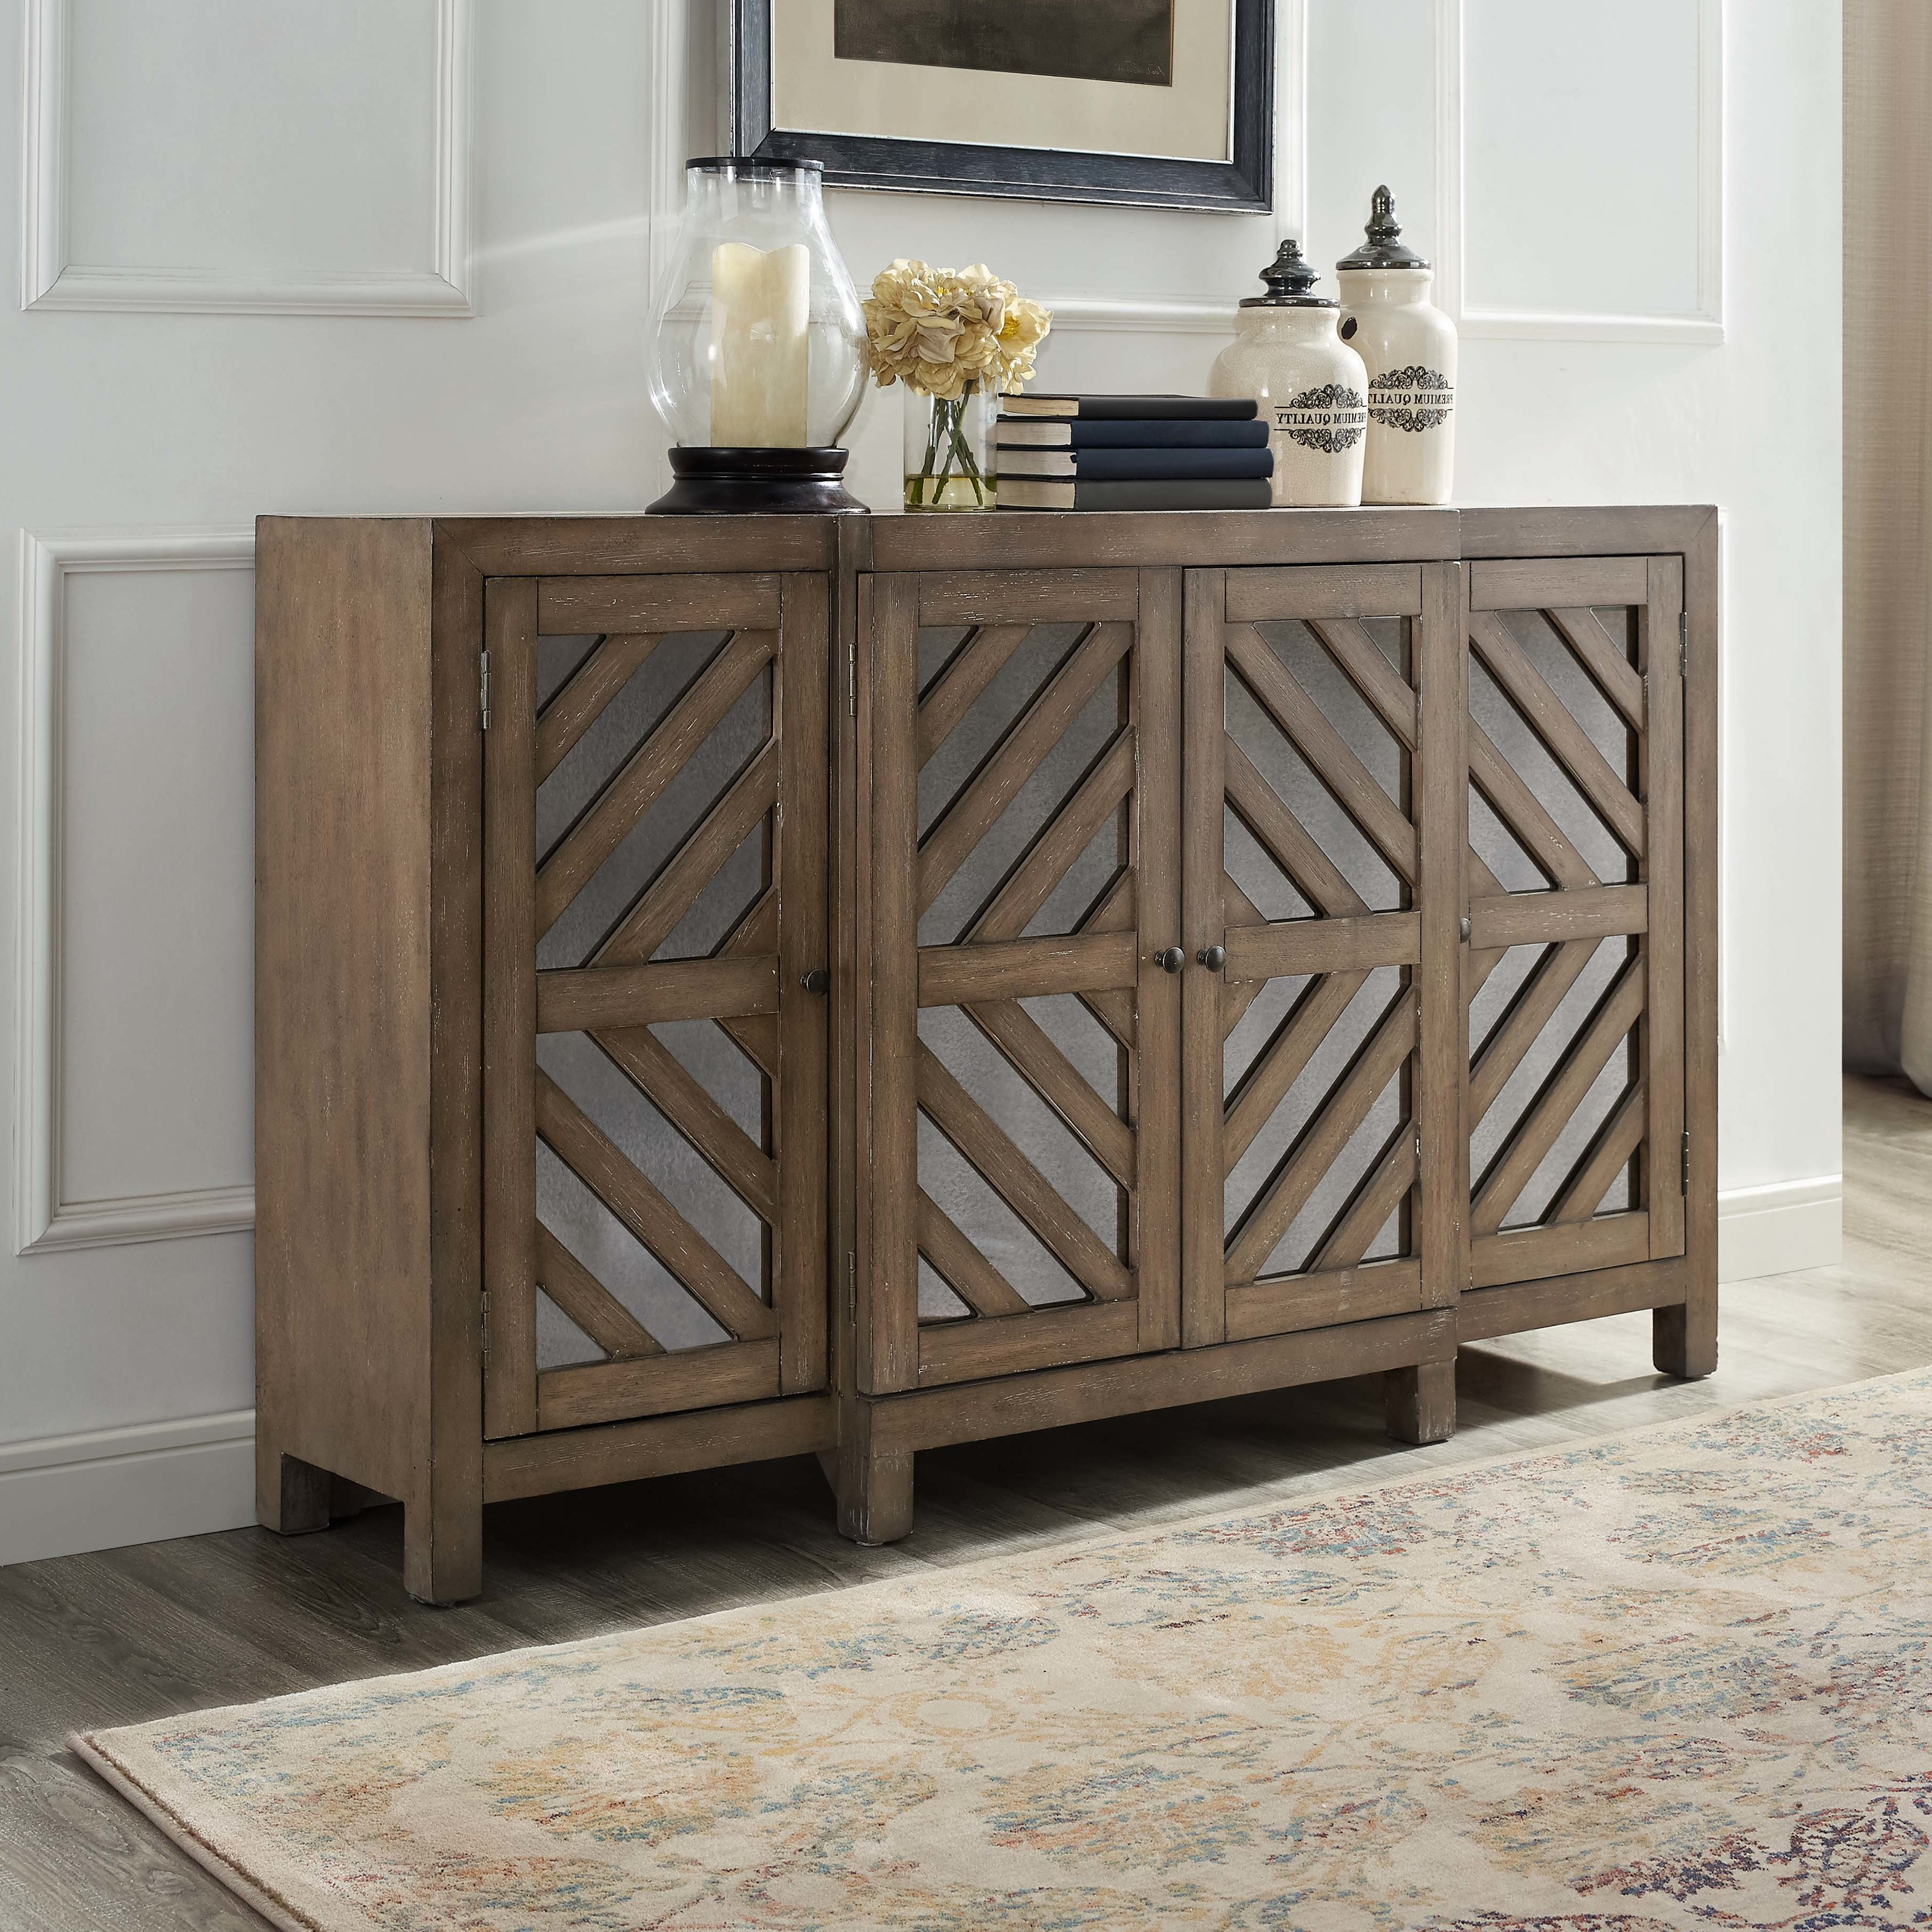 Union Rustic Lowrey 4 Door Credenza & Reviews (View 18 of 20)